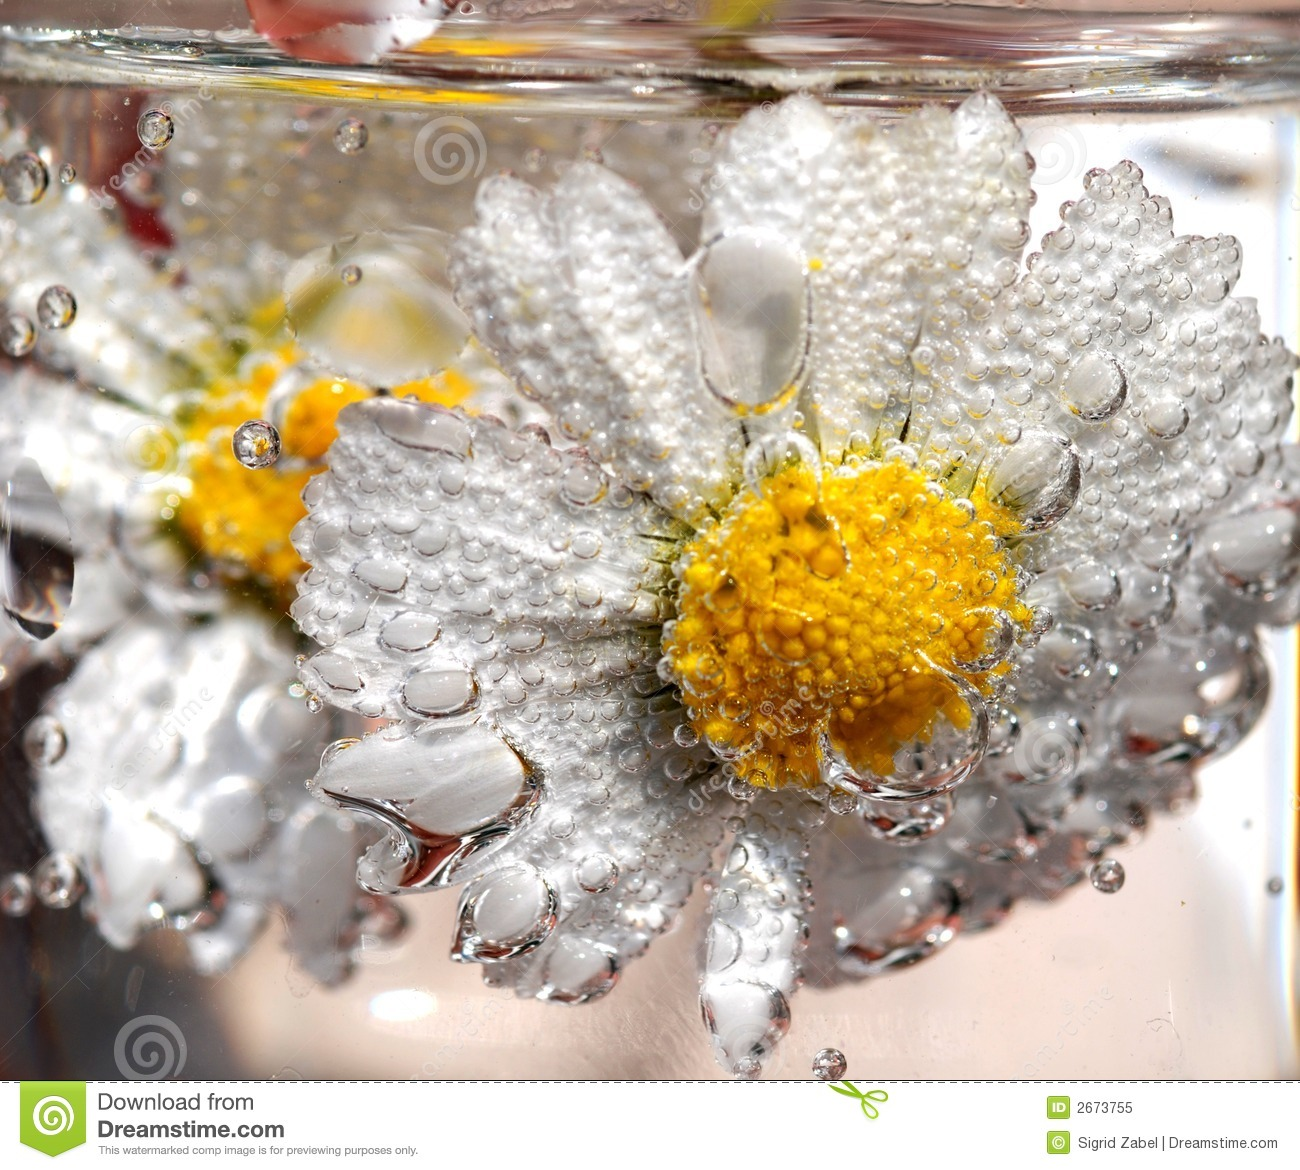 Daisy in sparkling water